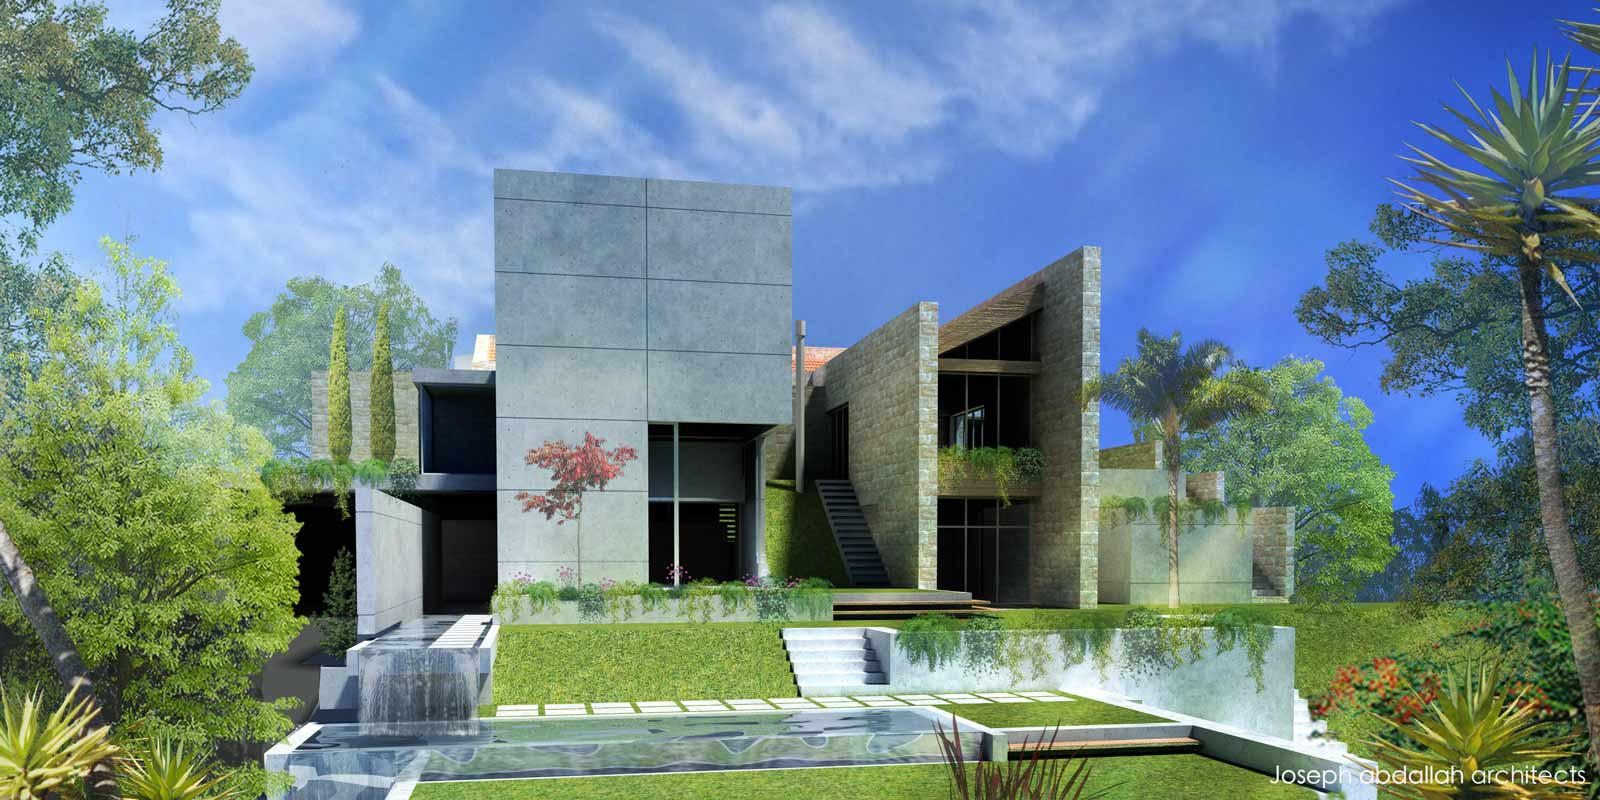 khoury-georges-villa-modern-archiecture-river-pool-joseph-abdallah-architects-1